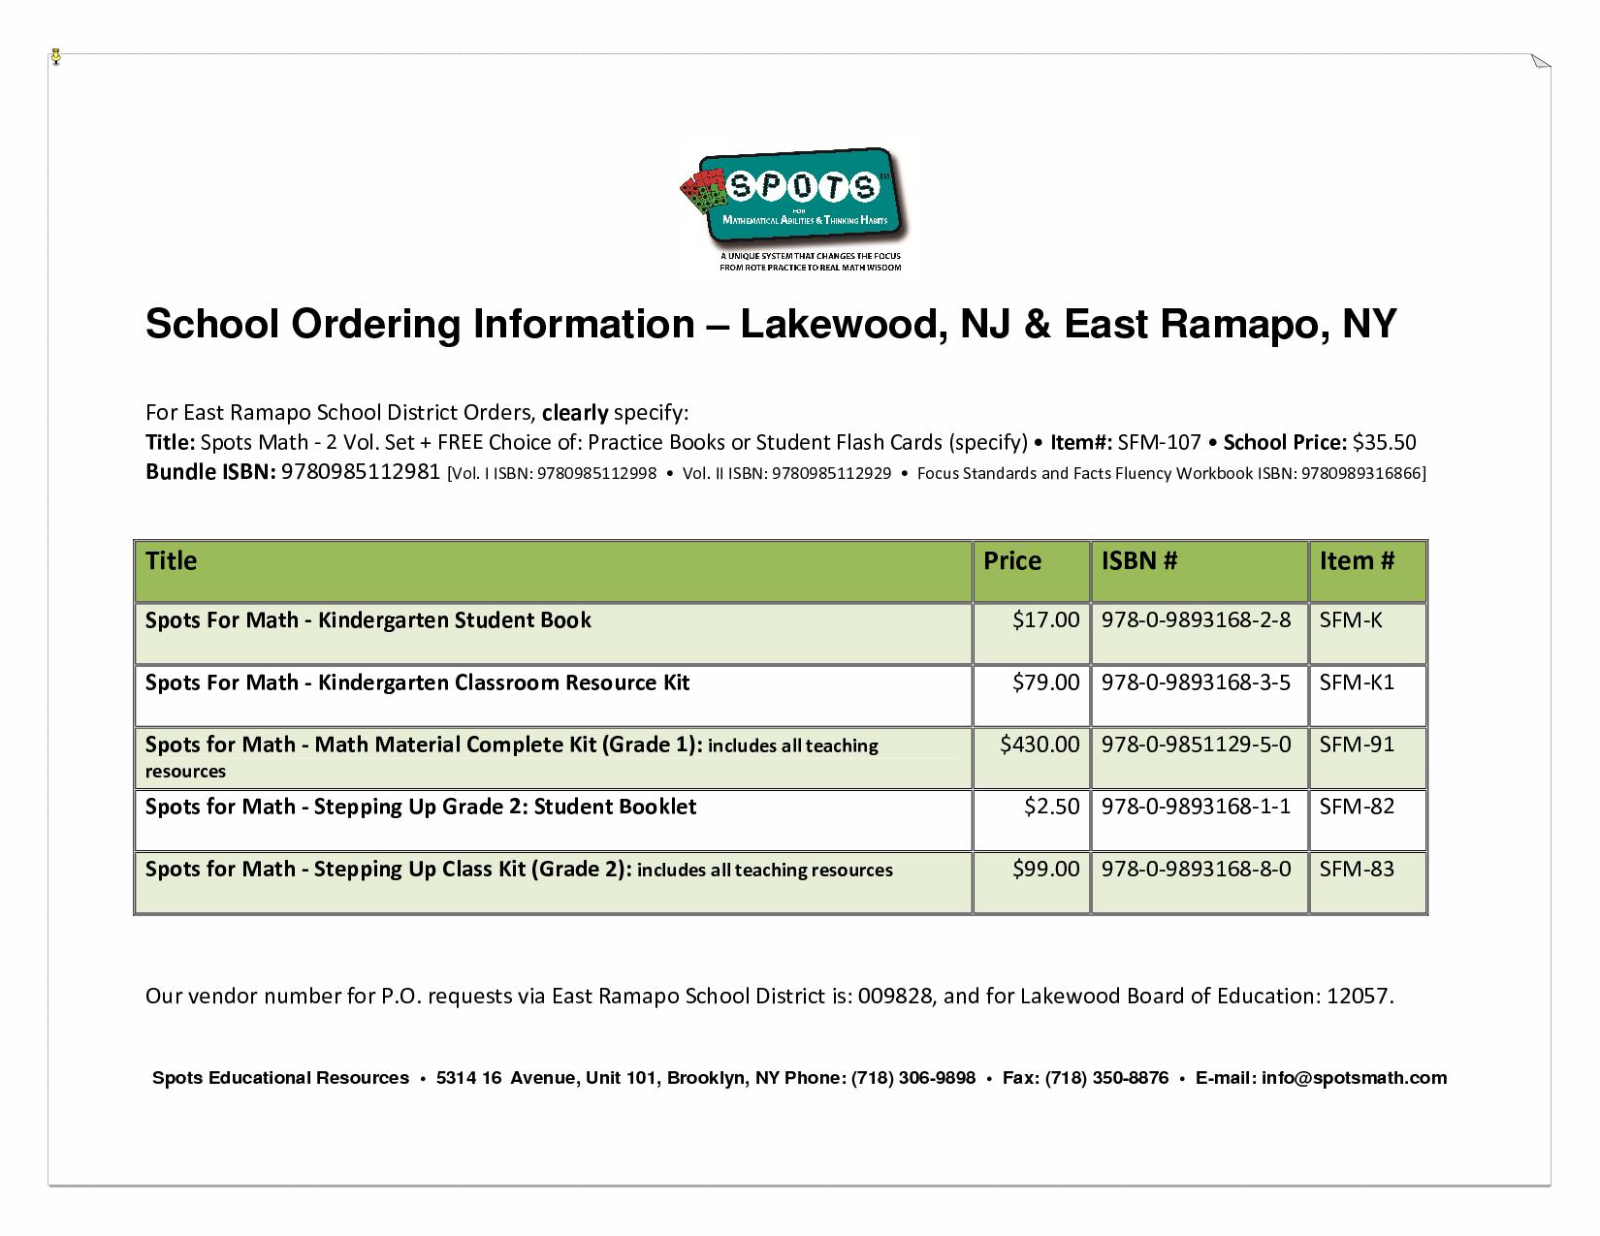 East Ramapo & Lakewood School Ordering Information